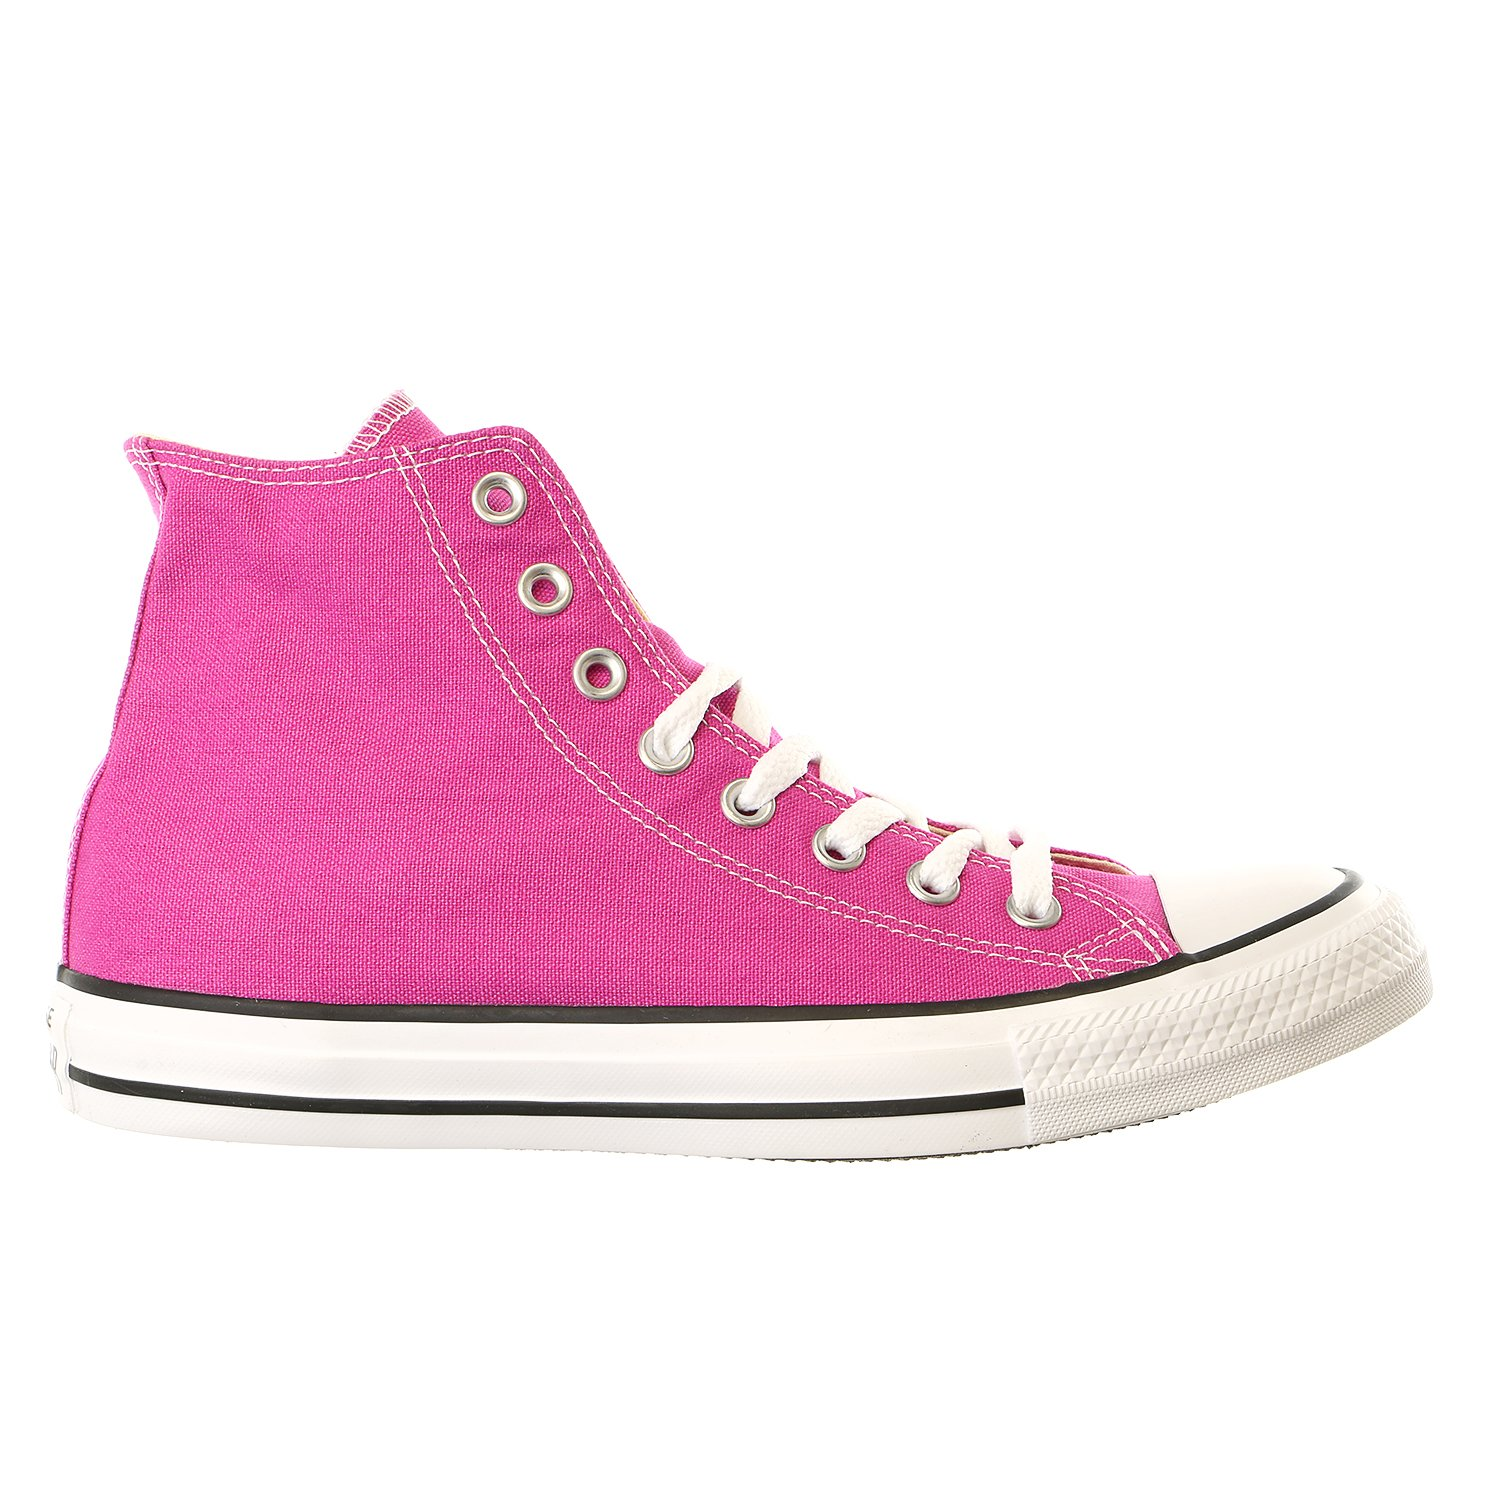 Converse Chuck Taylor Converse Etoiles Taylor Low Top Sneakers Sneaker Mode B077WBRDG4 Plastic Pink 53762c8 - shopssong.space